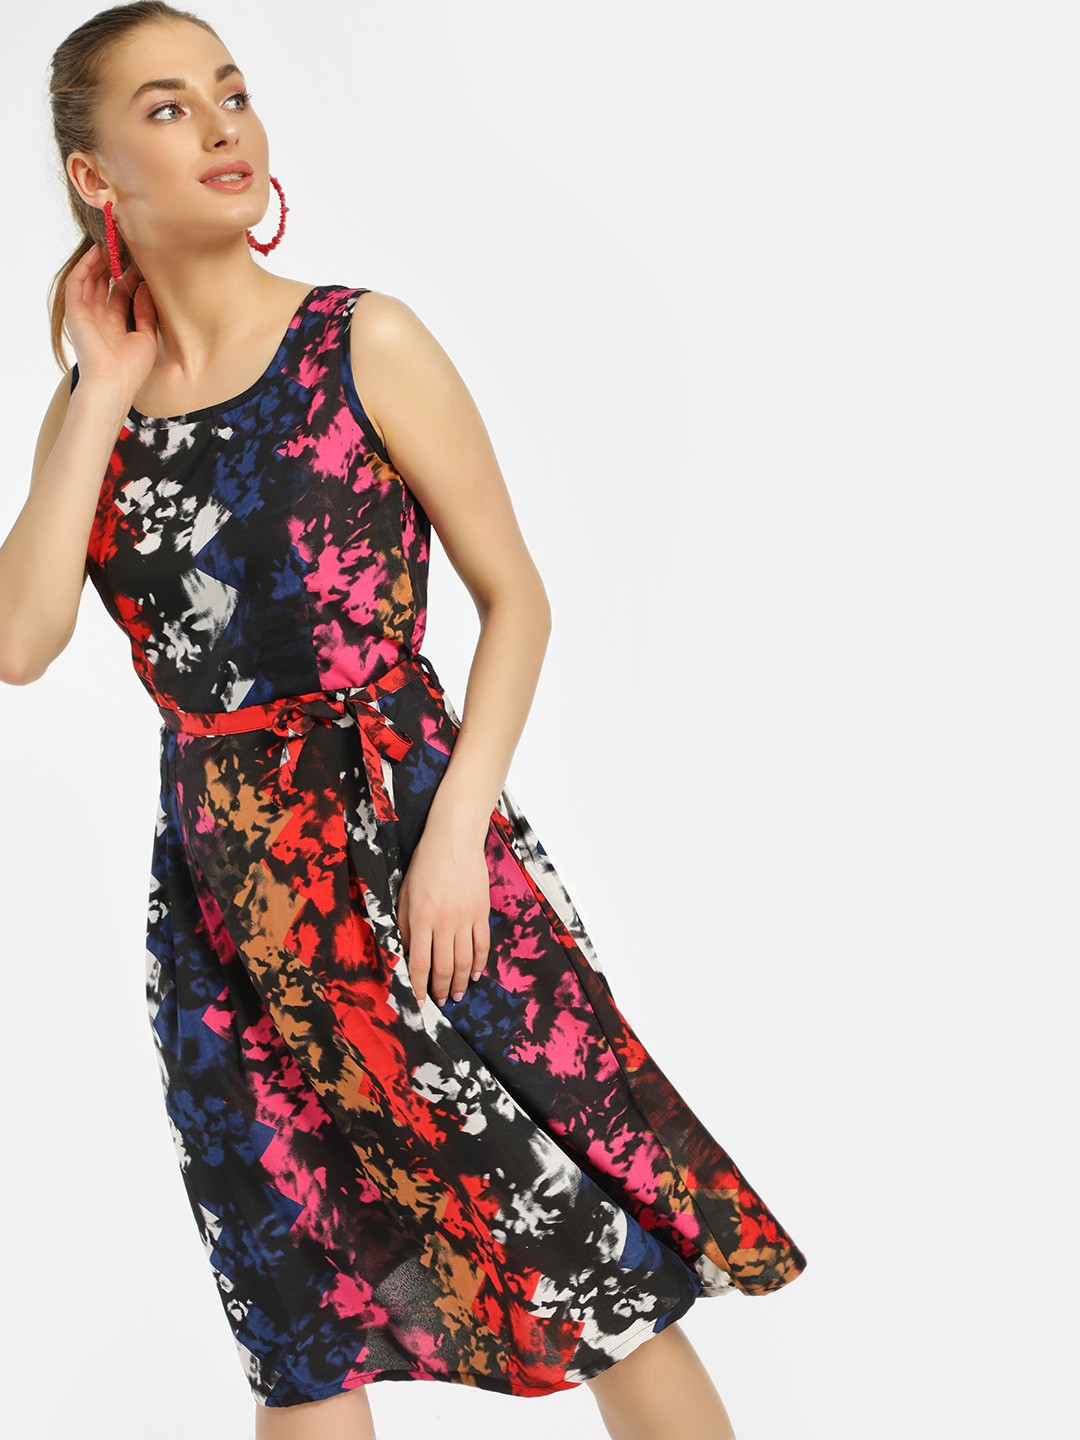 MIWAY Multi Sleeveless Printed Shift Dress 1